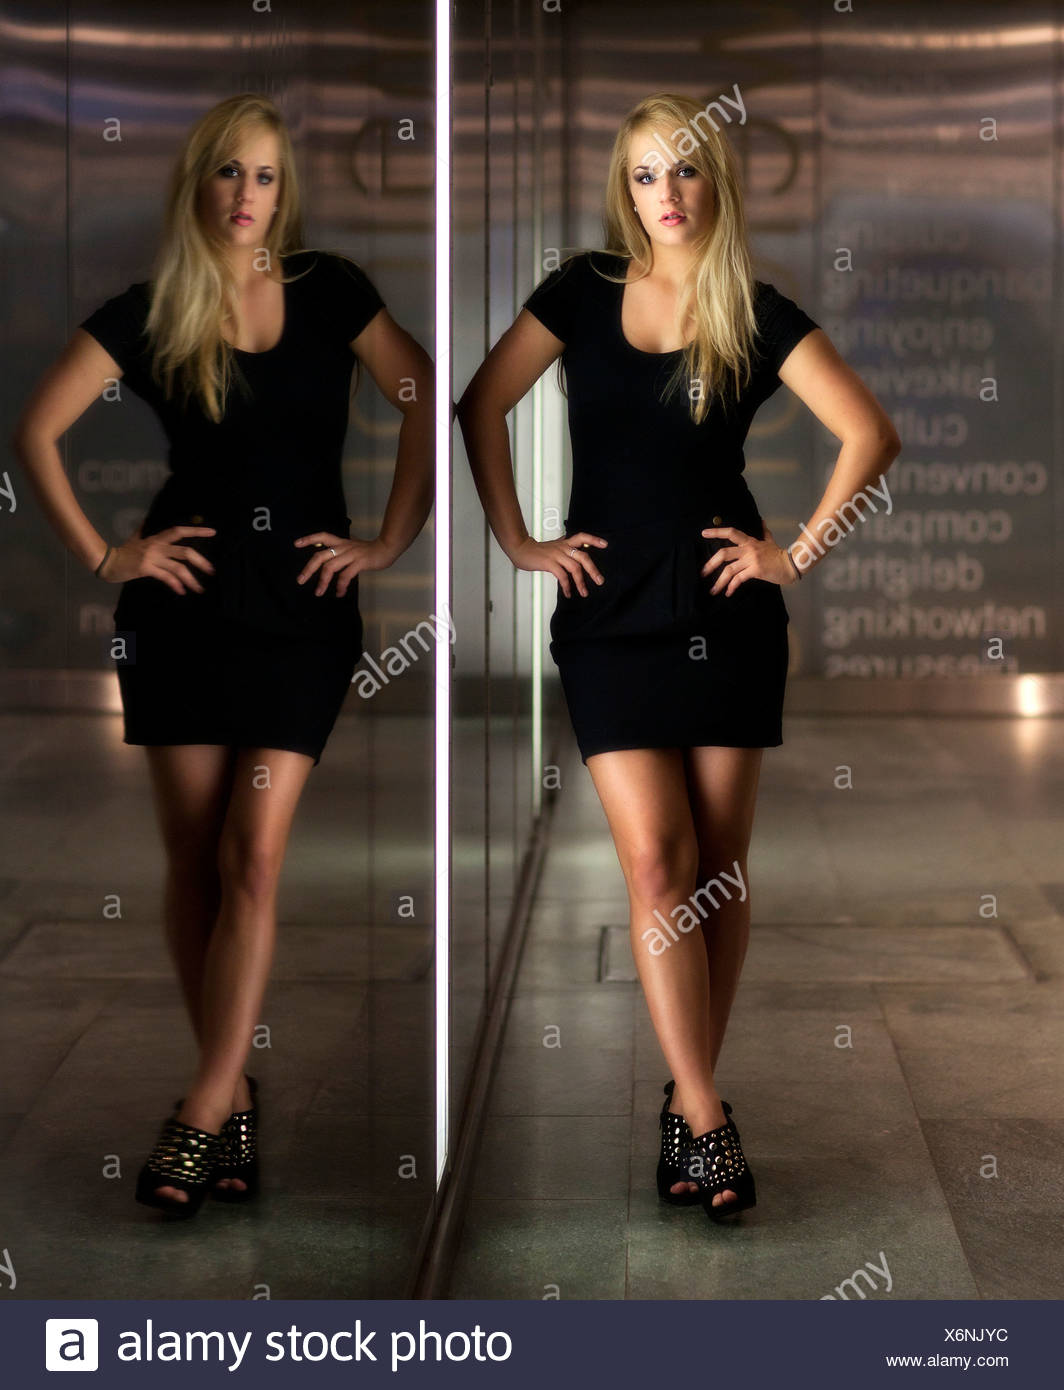 Young woman with long blonde hair wearing a black dress posing in front of glass wall, reflection, mirror image Stock Photo